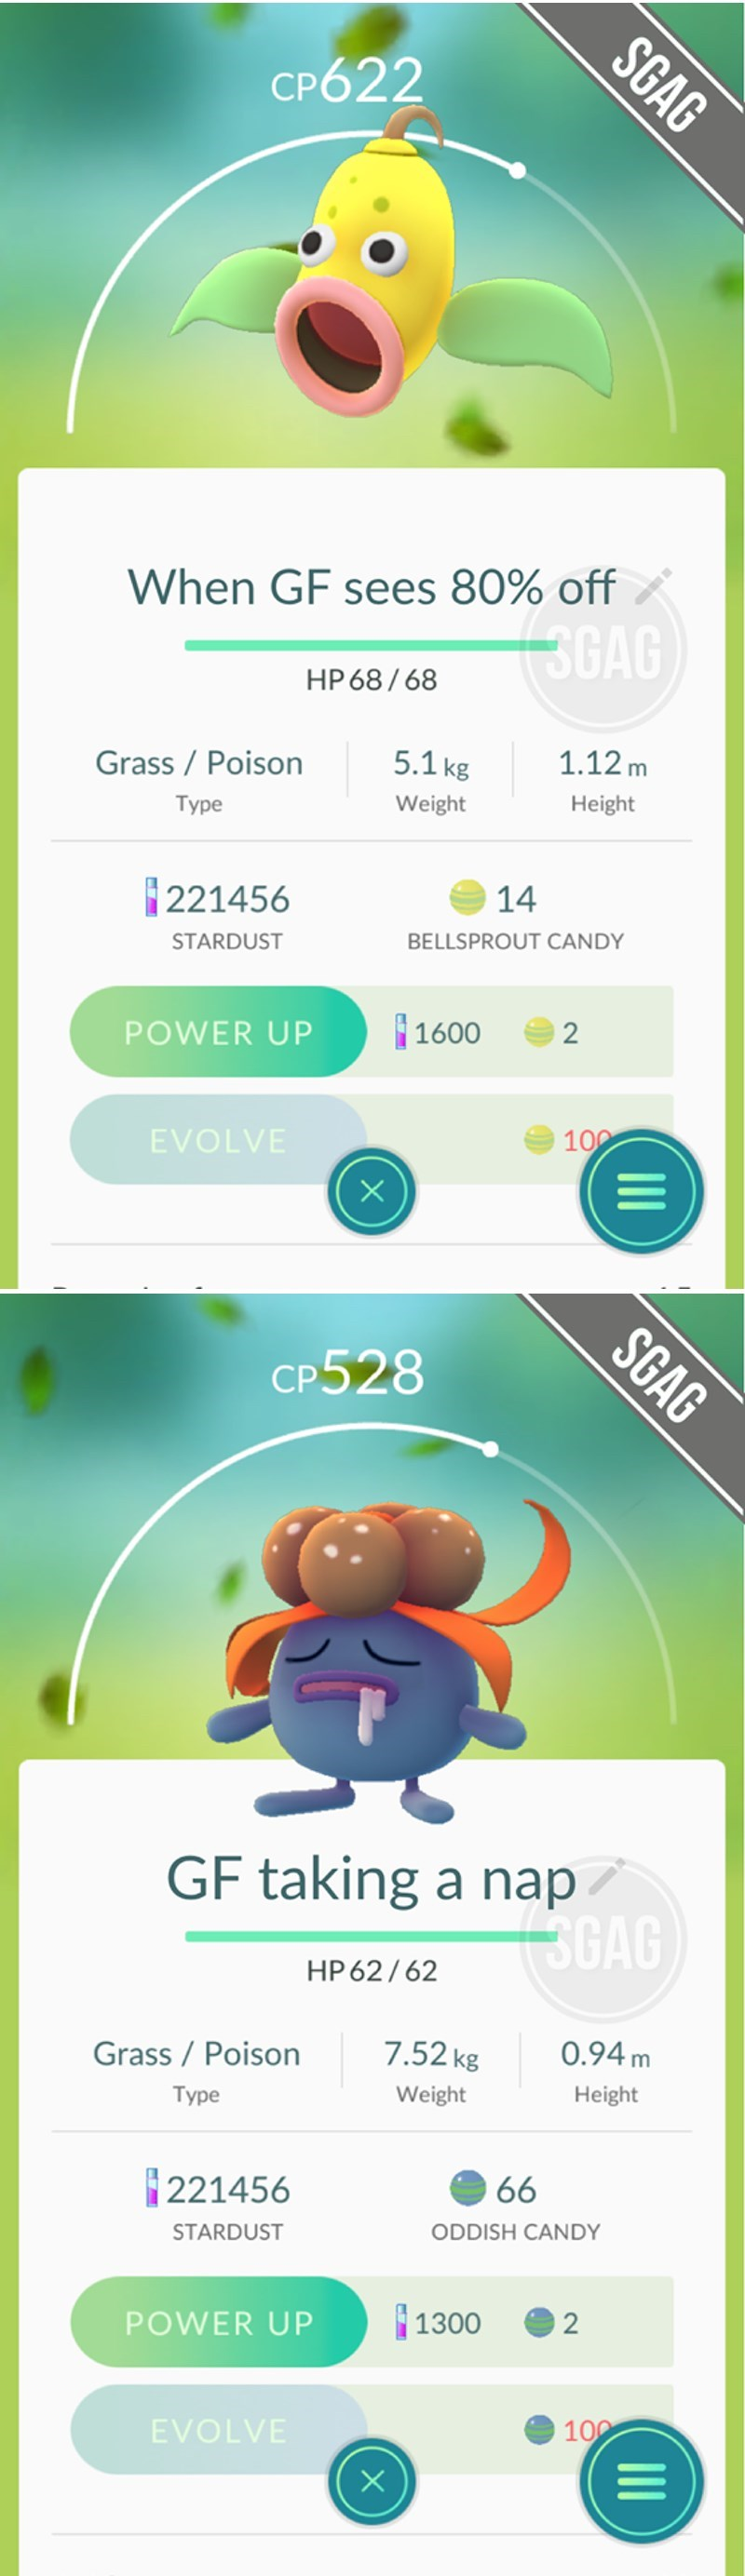 pokemon girlfriend - Text - CP622 When GF sees 80% off 3GAG HP 68/68 5.1 kg Grass/Poison 1.12m Weight Type Height 221456 14 STARDUST BELLSPROUT CANDY 1600 POWER UP 2 EVOLVE 100 CP528 GF taking a nap 3GAG HP 62/62 7.52kg O.94m Grass/Poison Weight Height Type 221456 66 STARDUST ODDISH CANDY POWER UP 1300 2 EVOLVE 100 SGAG II SGAG